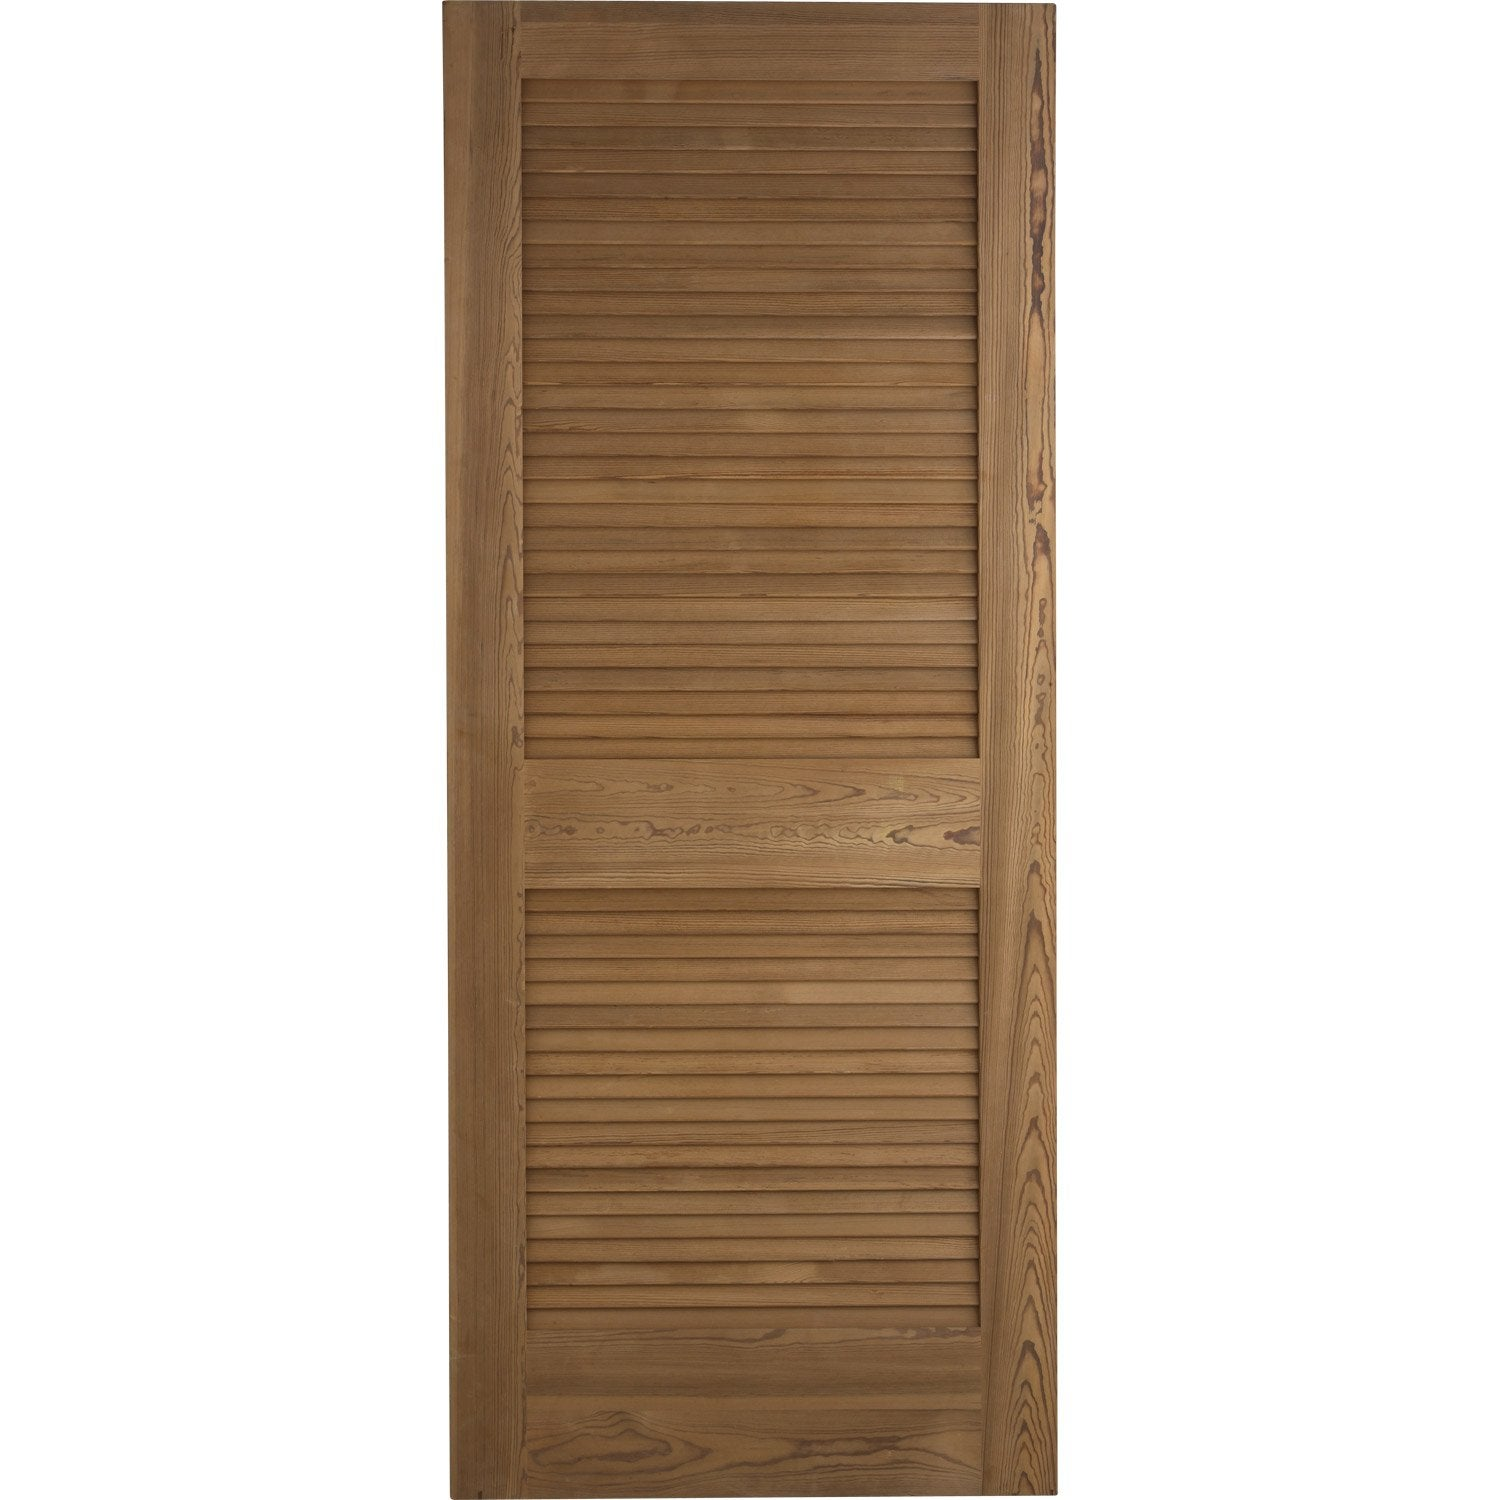 Porte coulissante pin plaqu marron java artens 204 x 73 for Porte simple